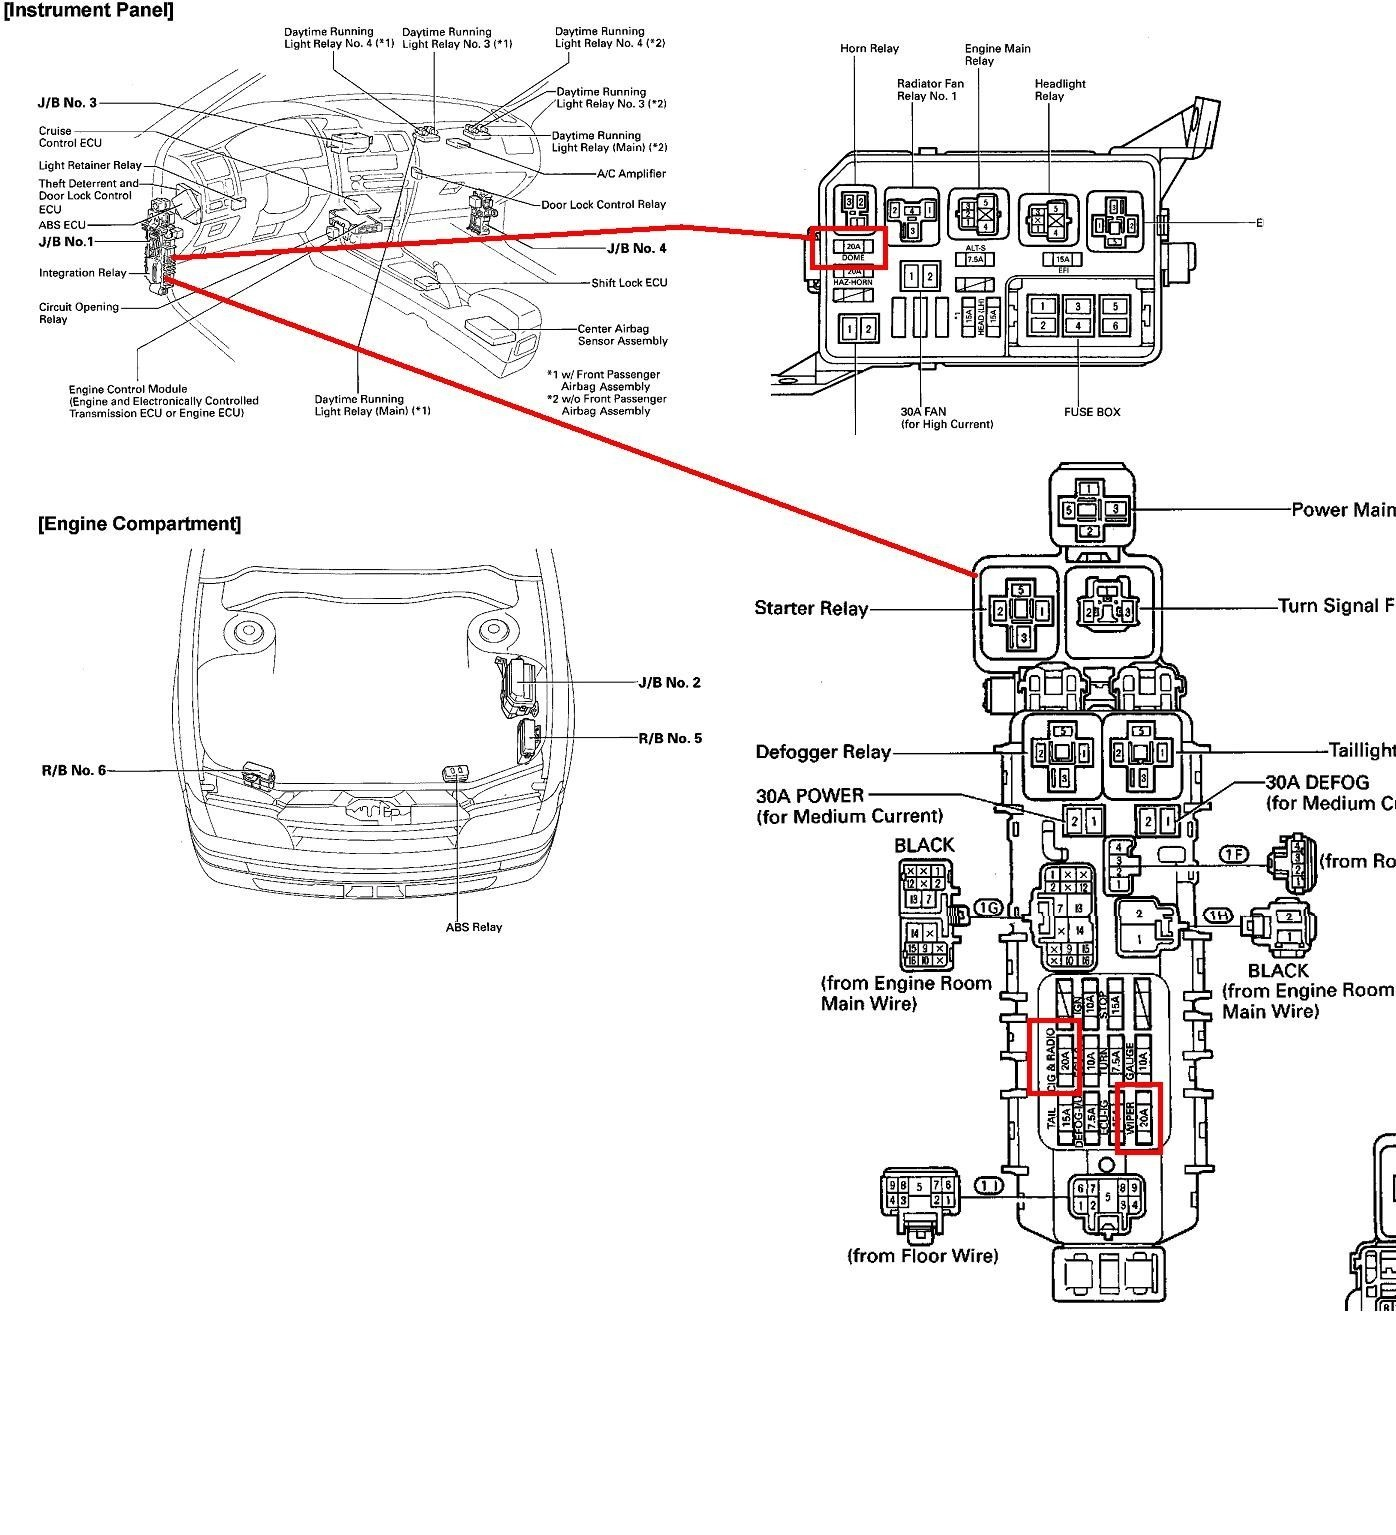 1995 toyota Camry Parts Diagram toyota Parts Wiring Wiring Diagram Inside Of 1995 toyota Camry Parts Diagram